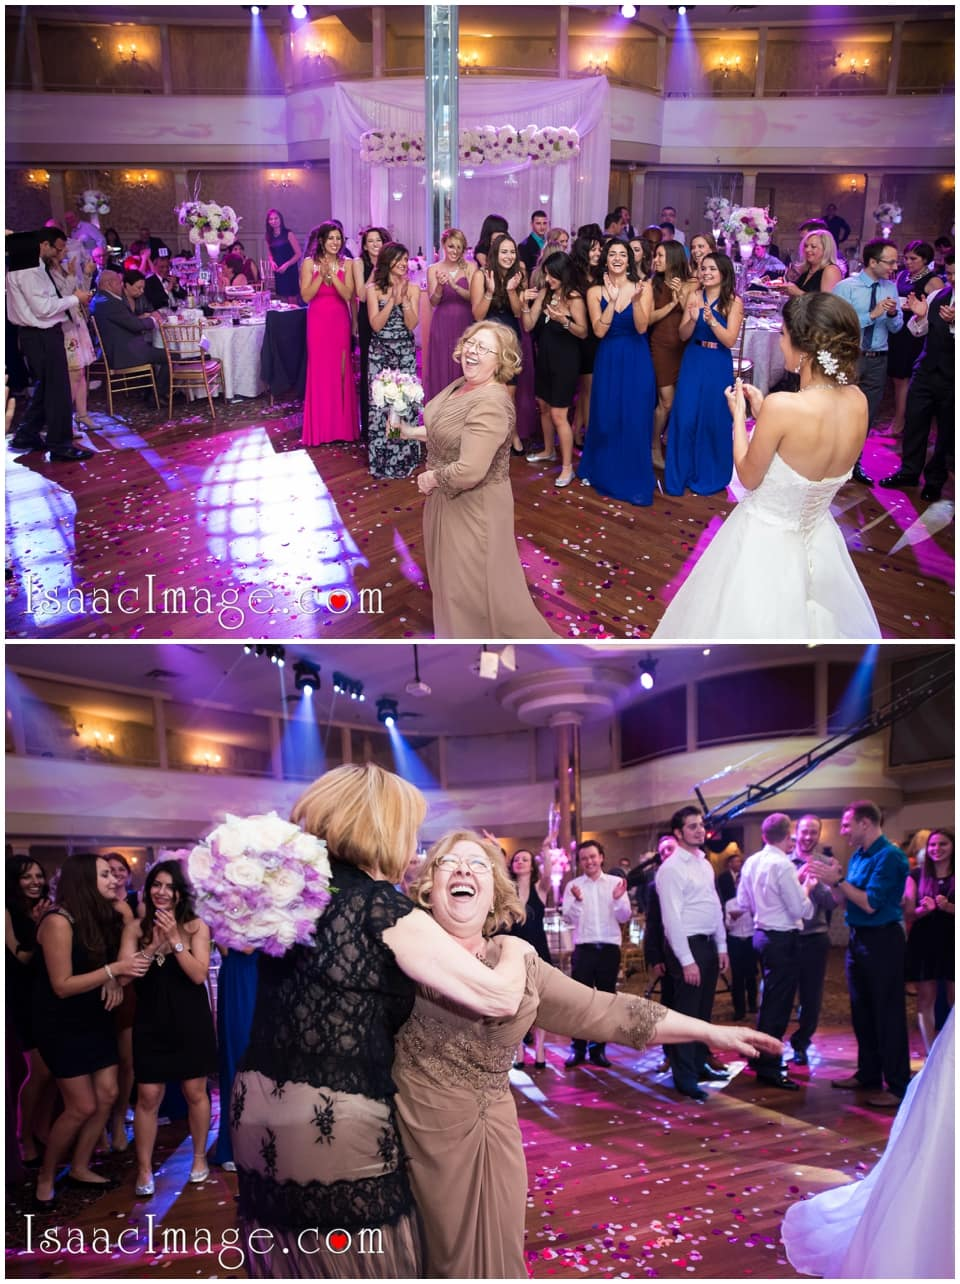 National Restaurant and Banquet Hall Wedding Celebration_7093.jpg